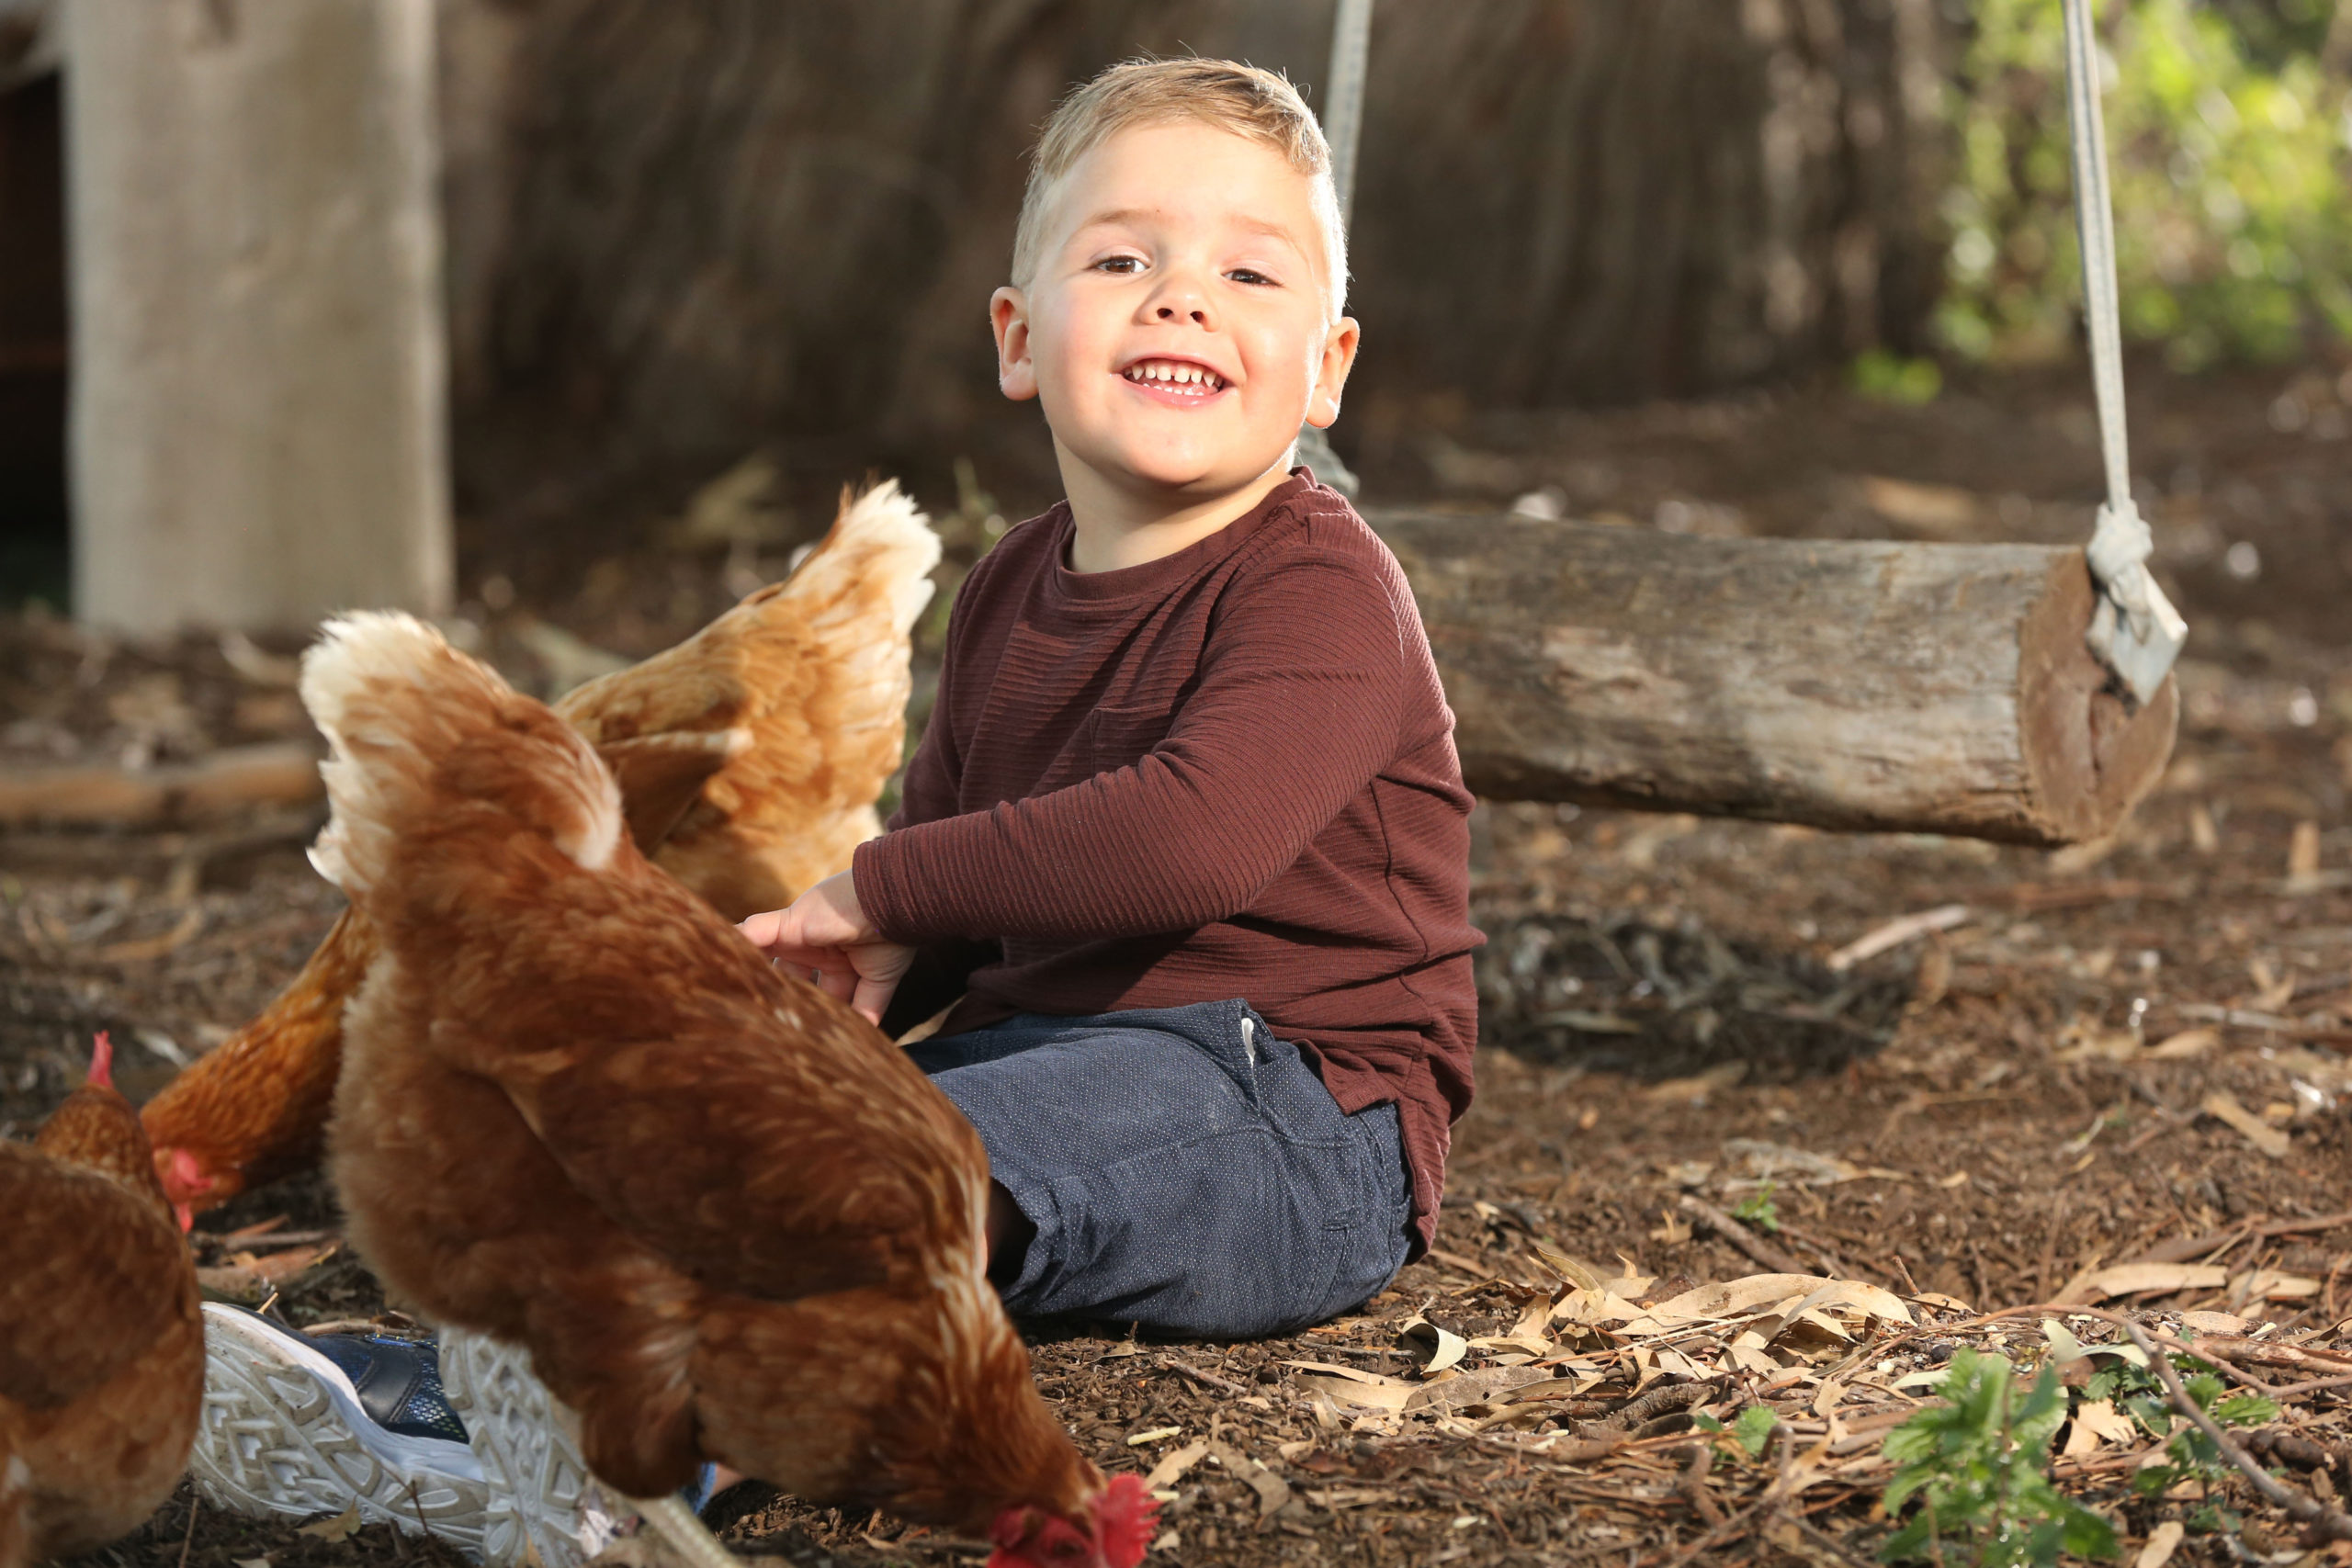 William sitting on the ground with a chicken